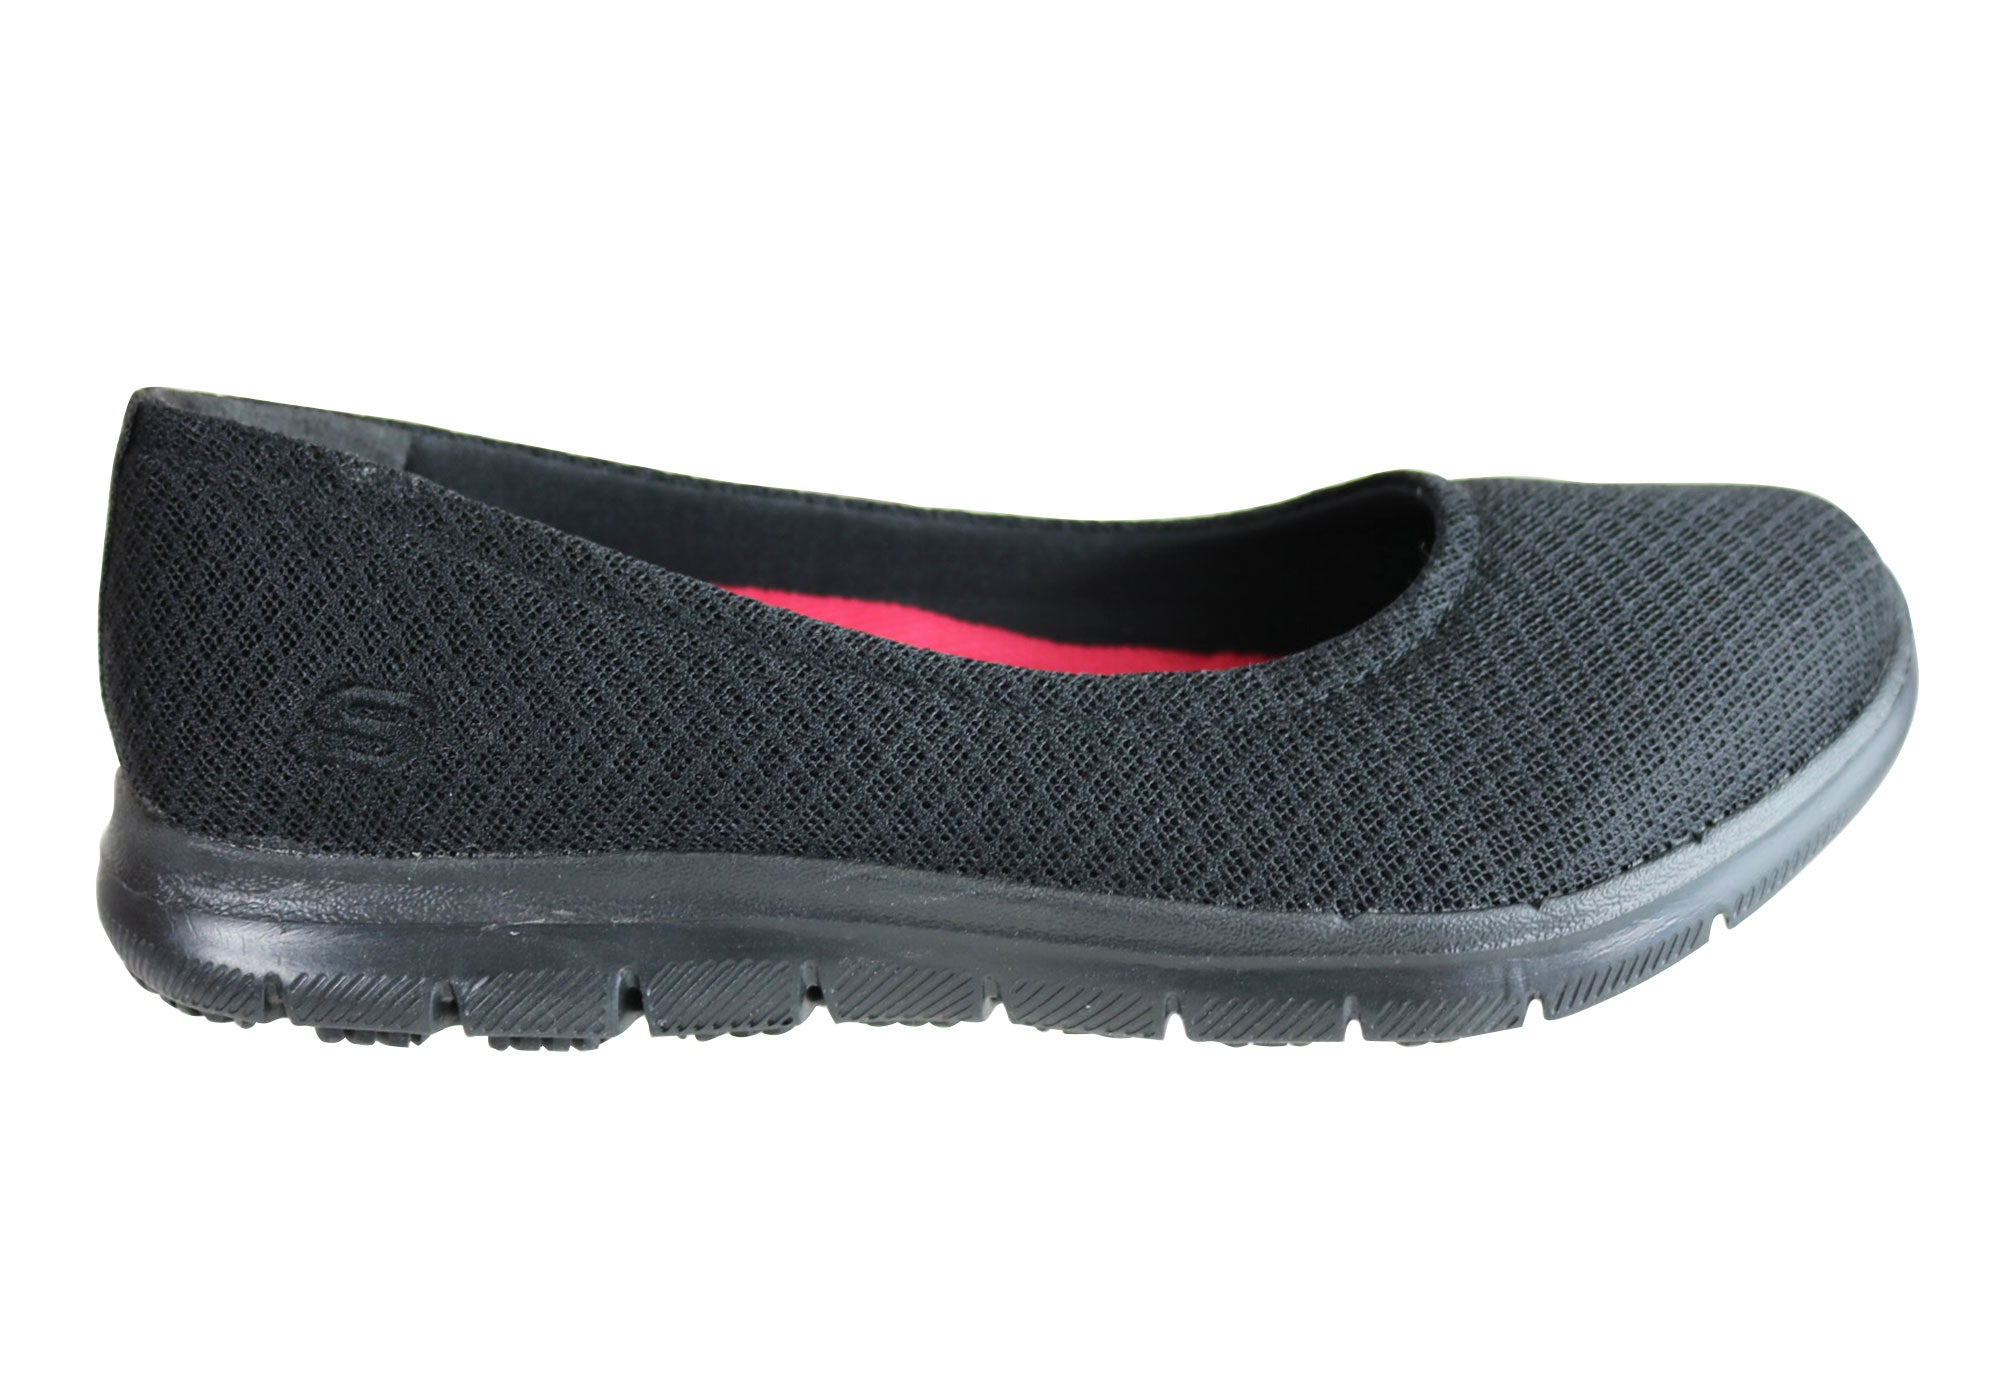 75b8fbec6 Home Skechers Womens Relaxed Fit Ghenter Niota Slip Resistant Work Shoes.  Black ...